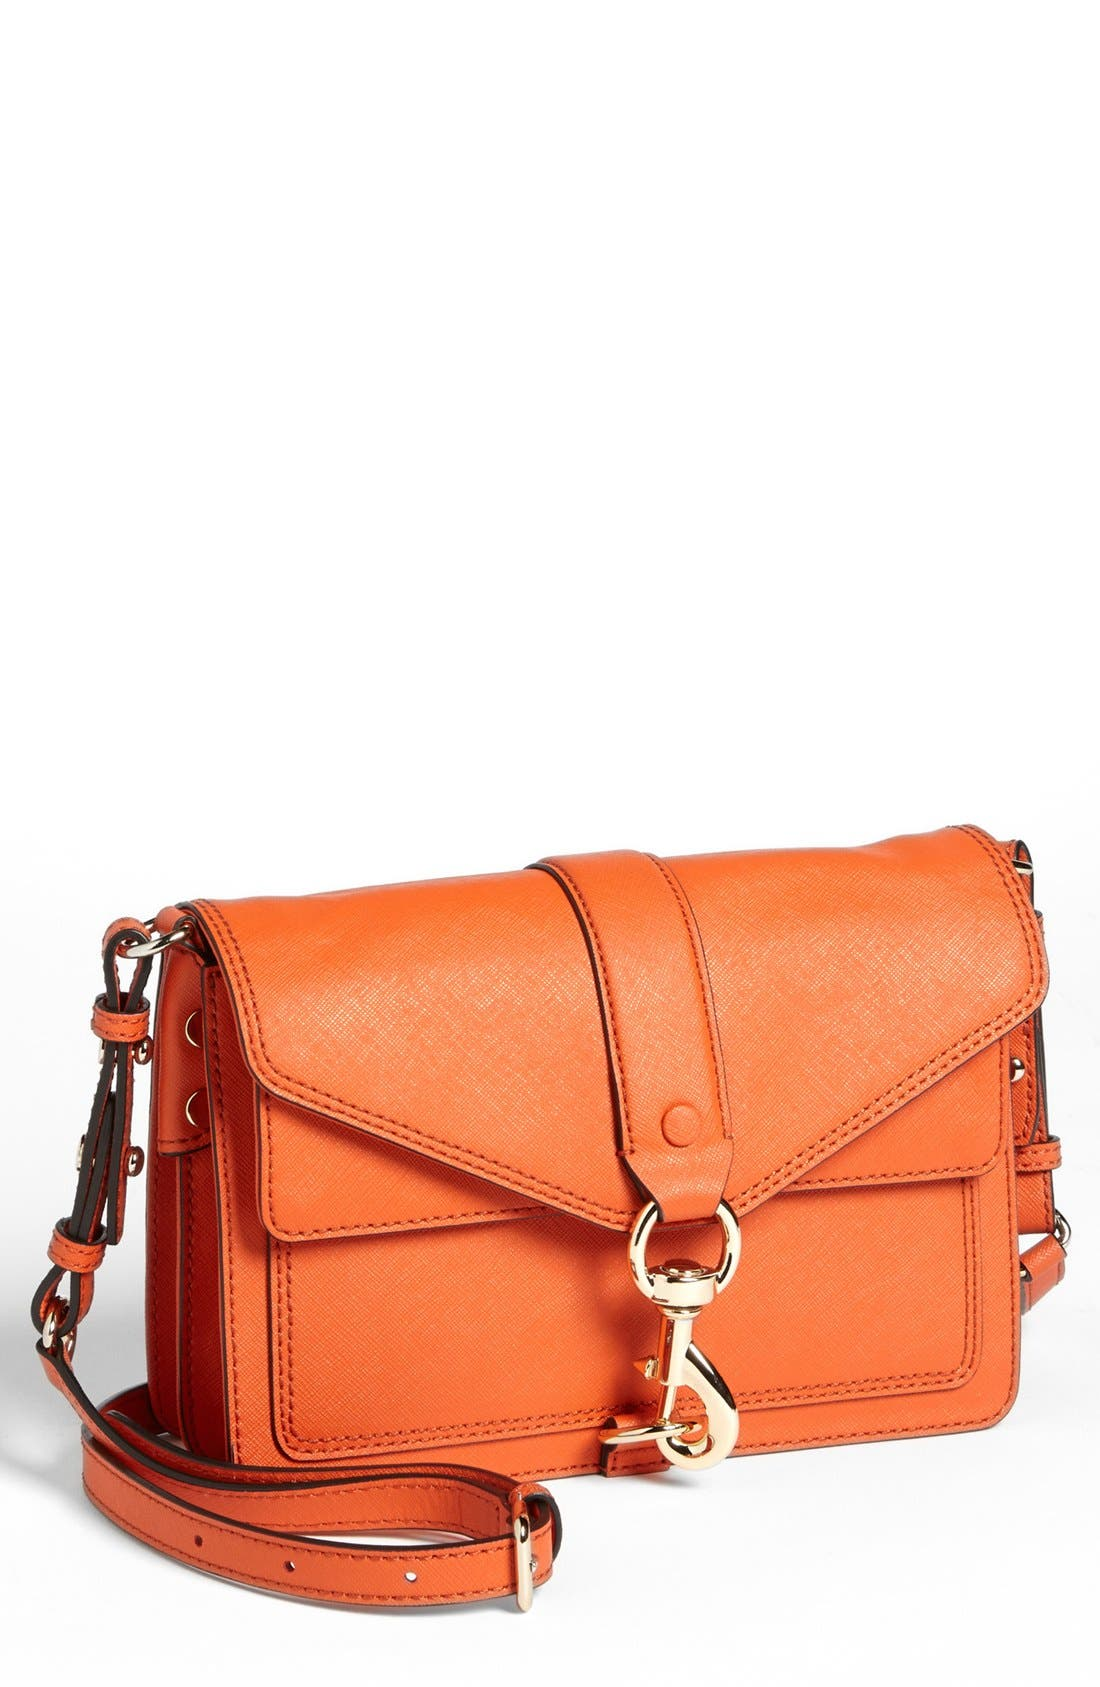 Alternate Image 1 Selected - Rebecca Minkoff 'Hudson Moto Mini' Crossbody Bag